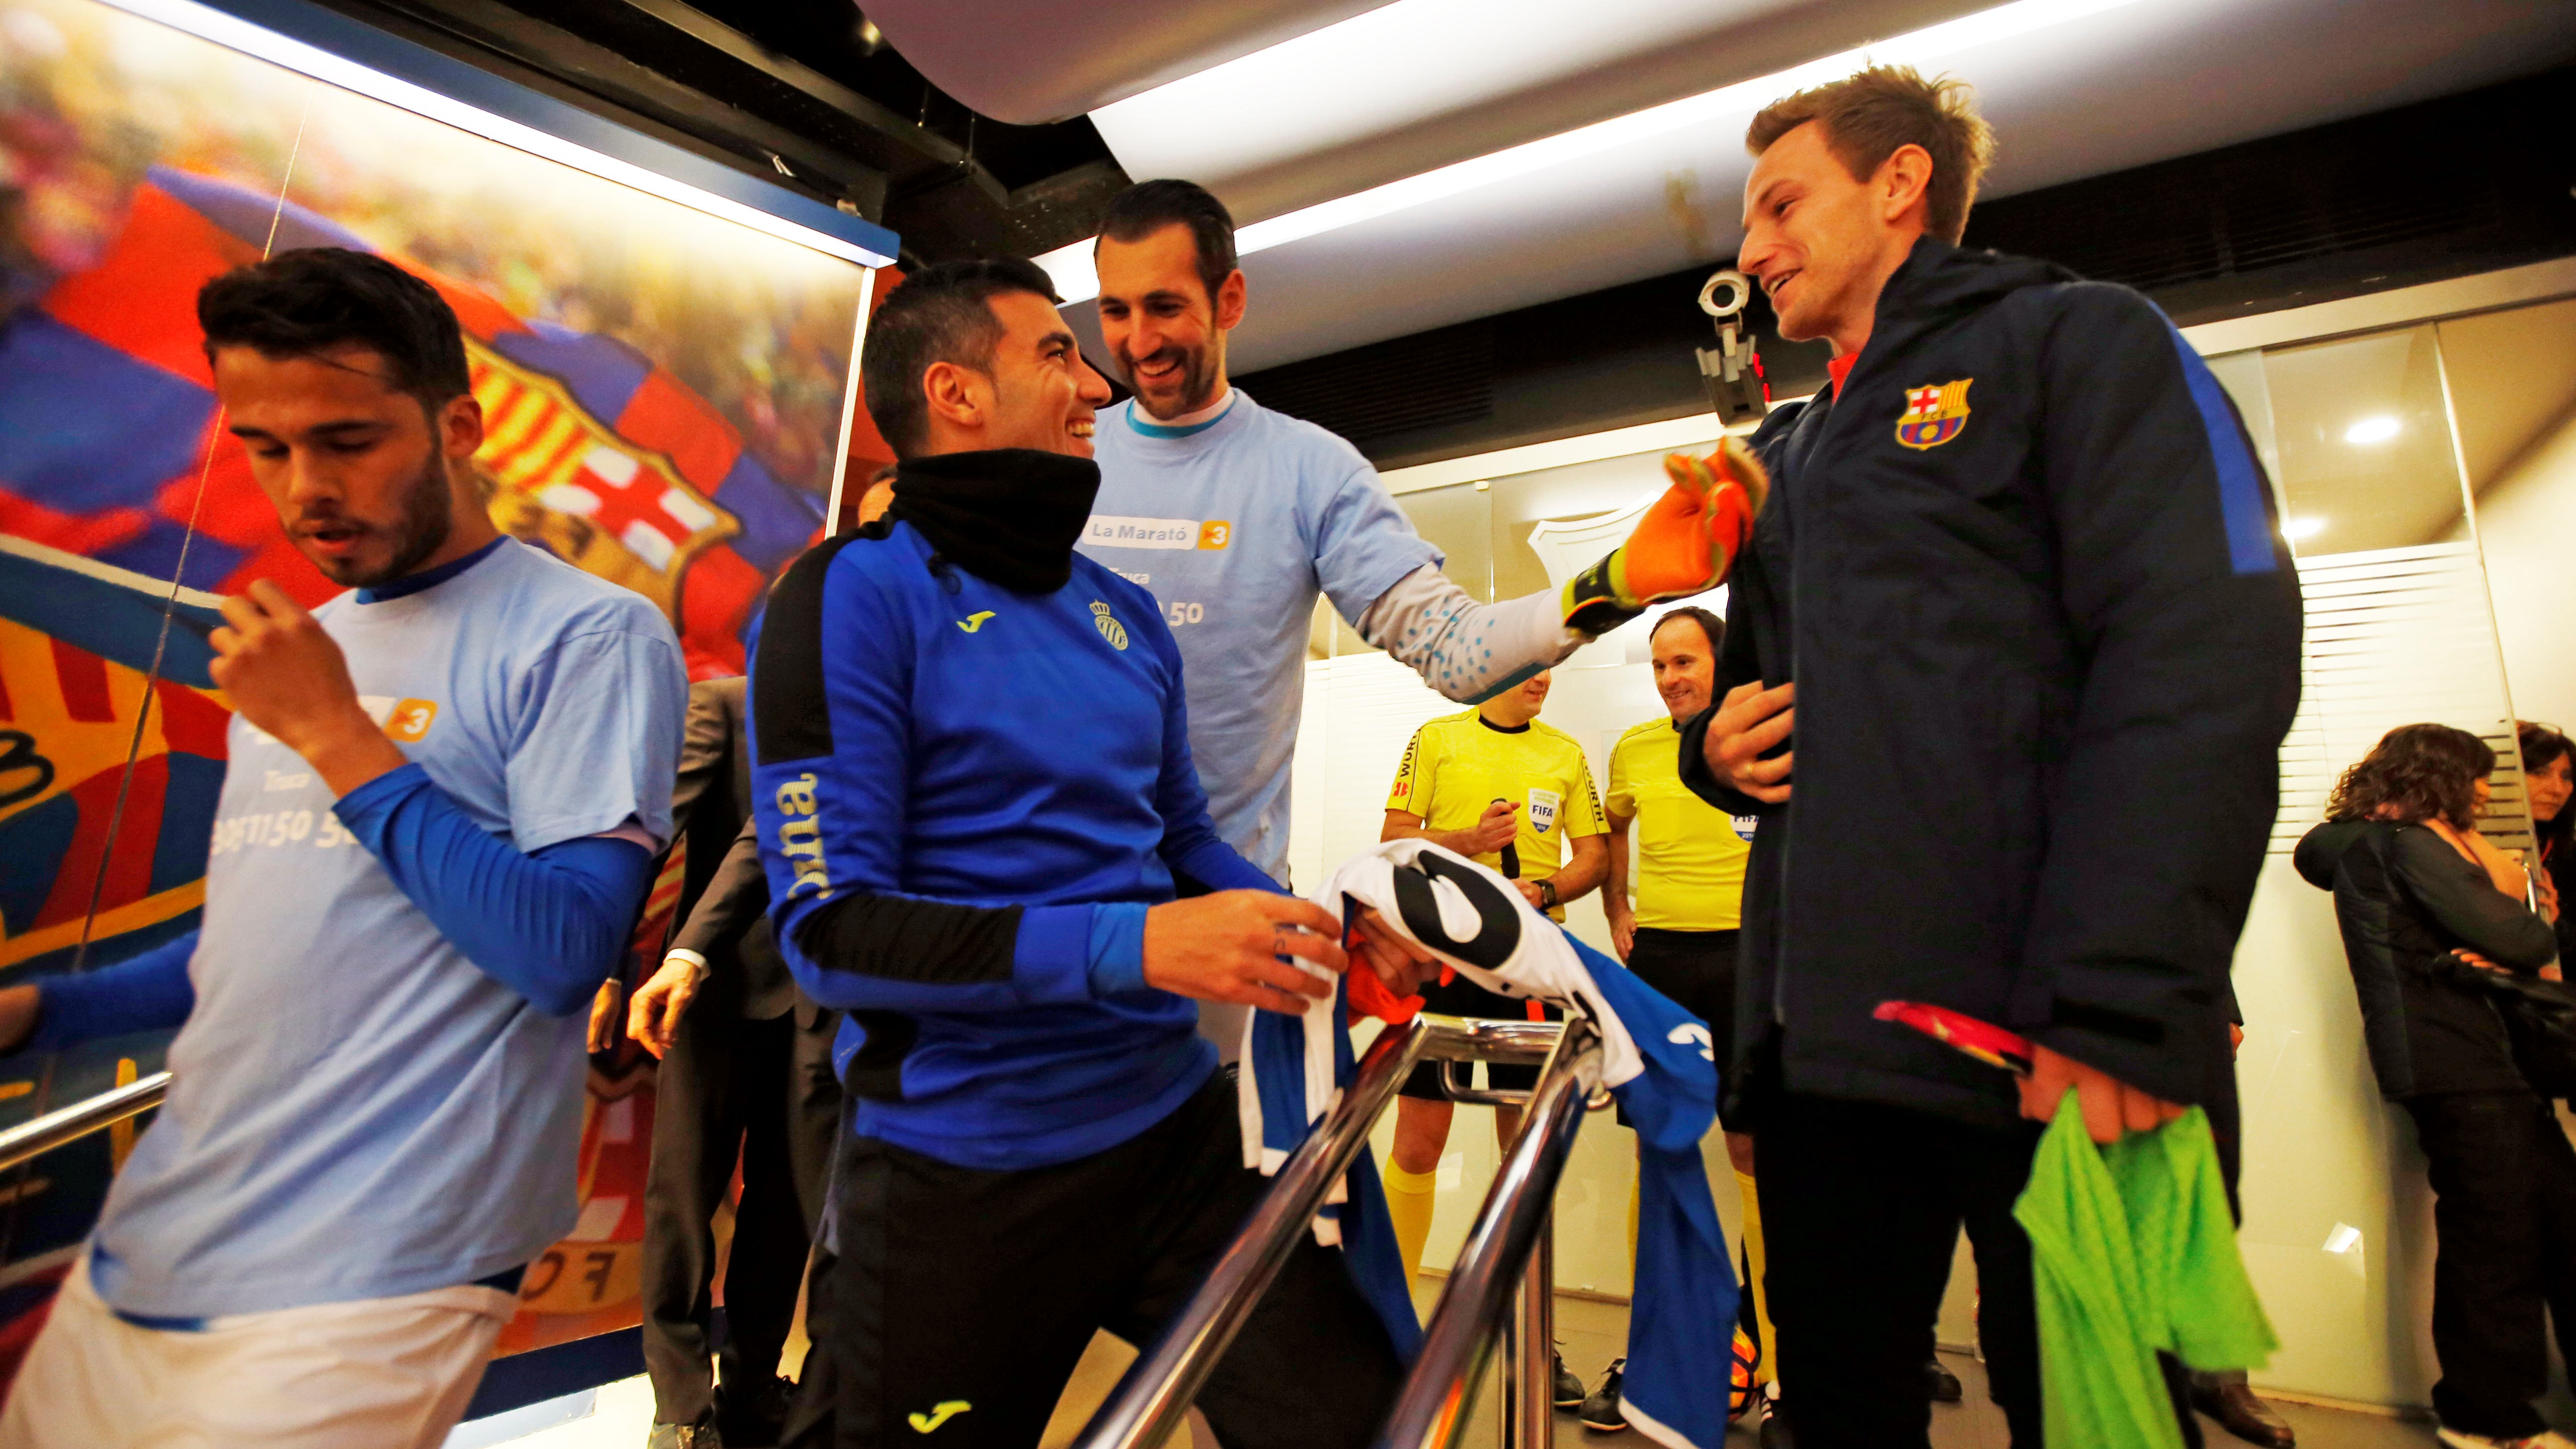 FC Barcelona – RCD Espanyol: The players in the tunnel before the game